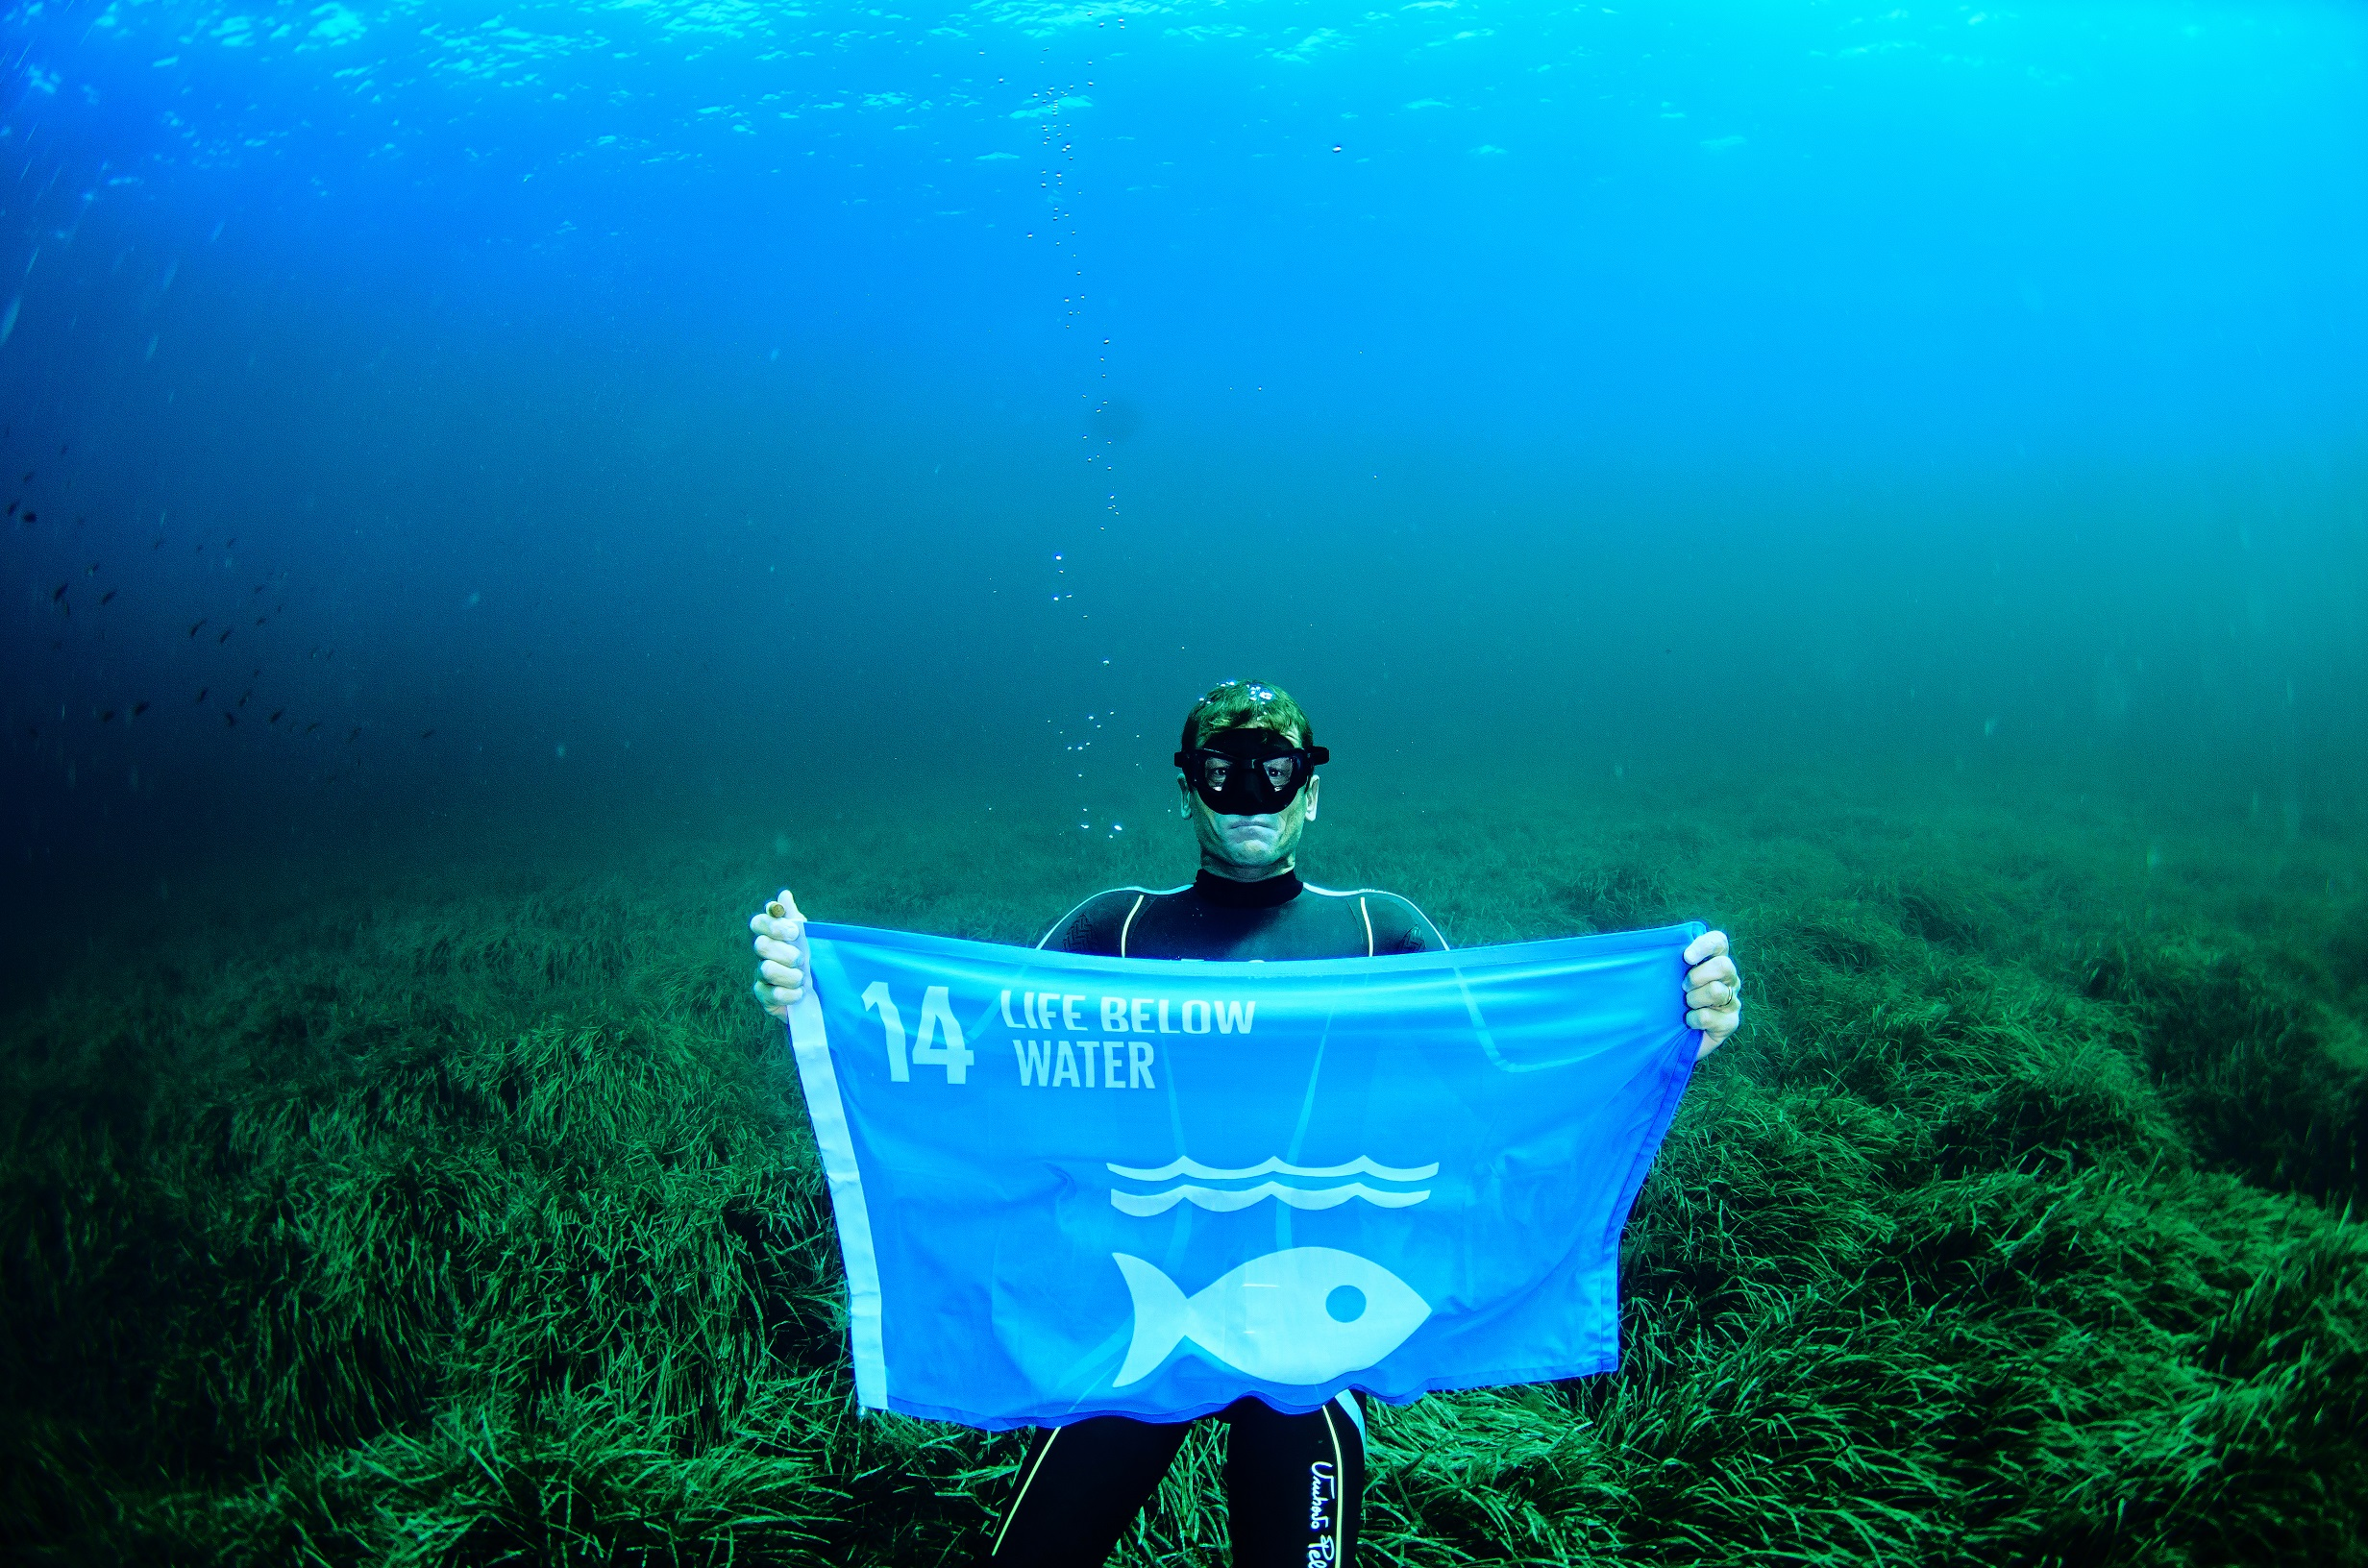 http://eo-jo.com/wp-content/uploads/2019/06/SDG14-Free-diving-world-champion-Umberto-Pelizzari-raised-a-flag-to-represent-Goal-14-Life-Below-Water-UN-Global-Goals-for-Sustainable-Development-Credit-Enric-Sala-RESIZED.jpg